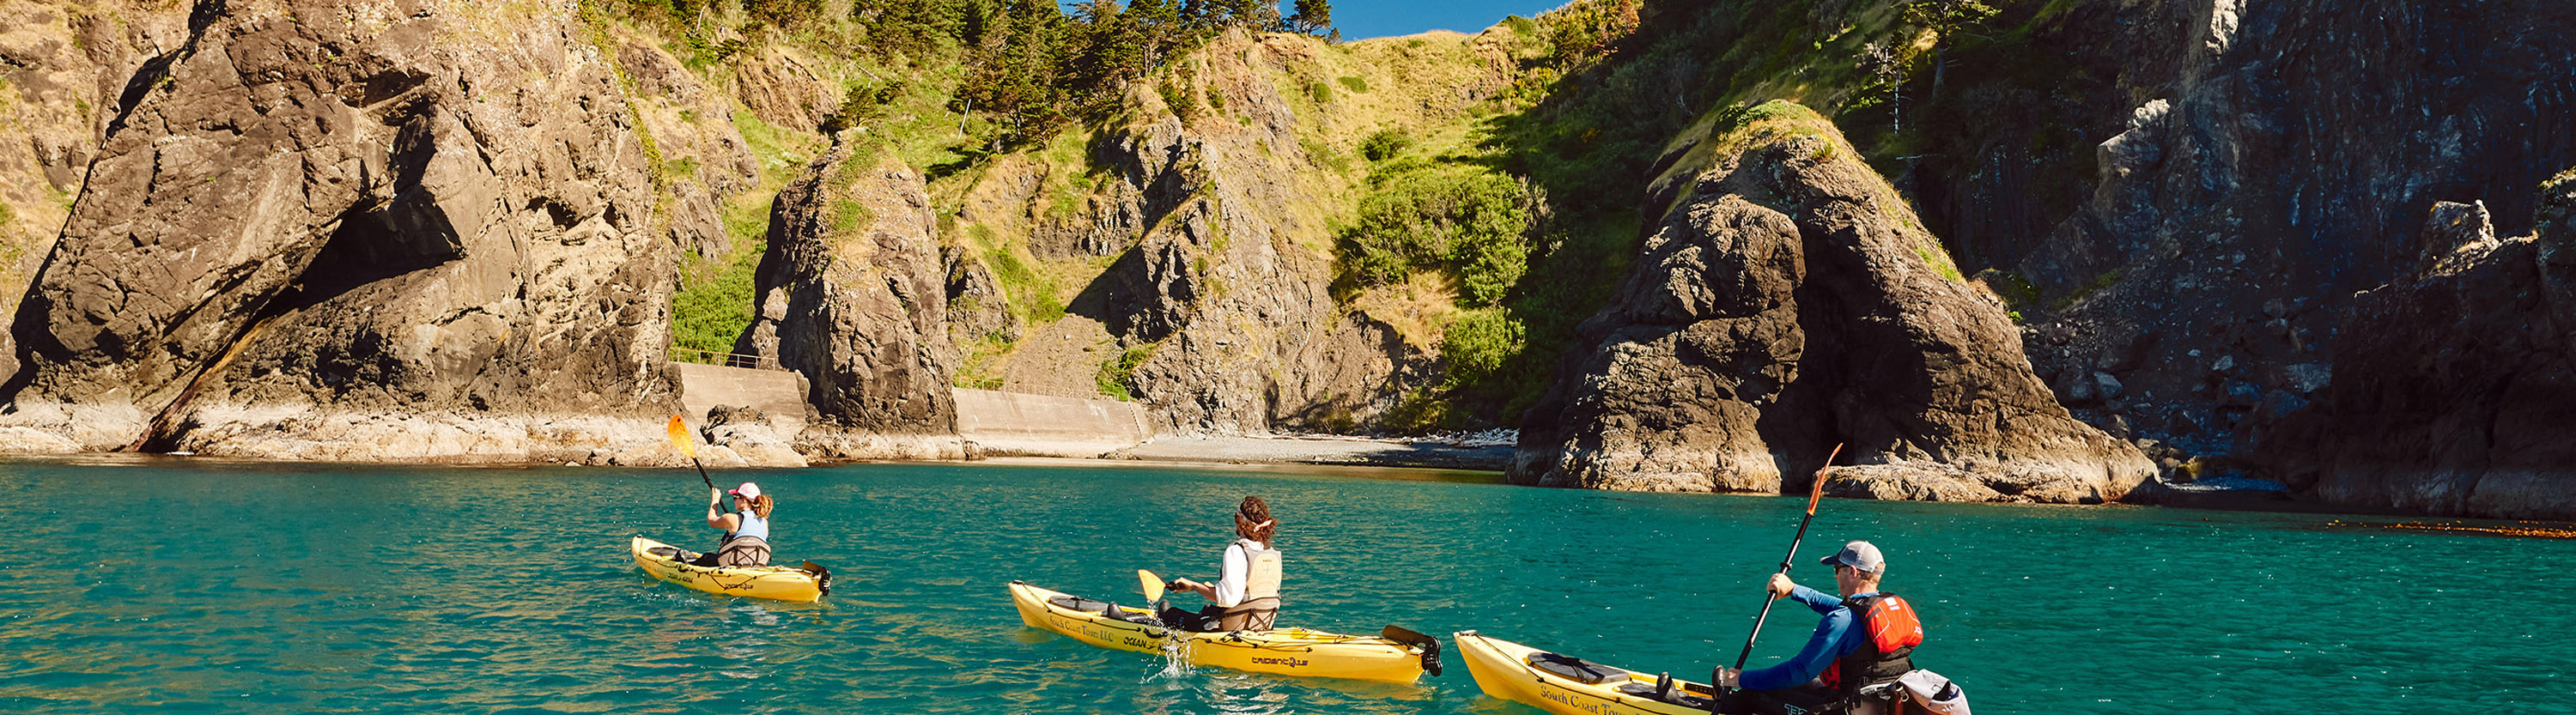 Three people in kayaks on a river between cliffs